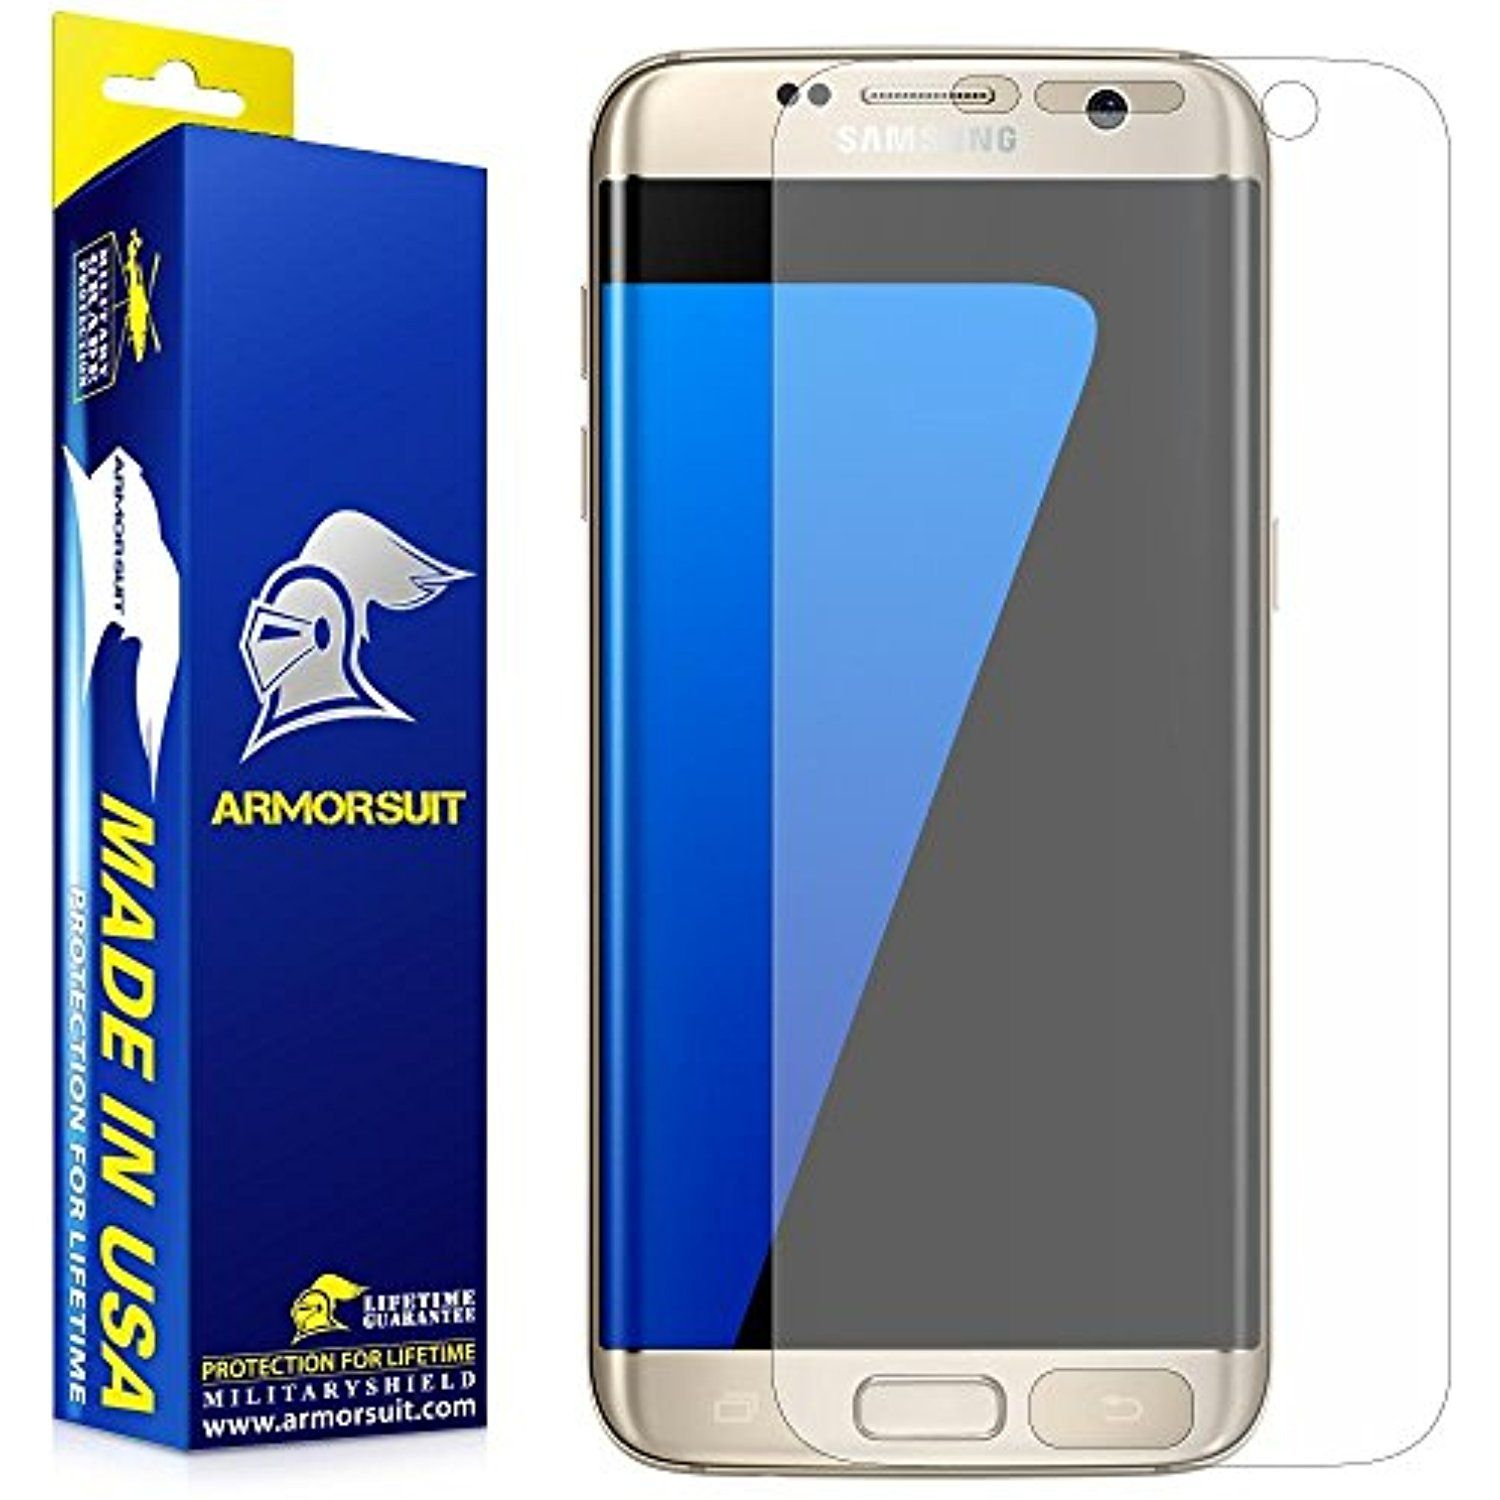 ArmorSuit Anti Glare Full Coverage Armorsuit MilitaryShield Matte Screen Protector for Samsung Galaxy S7 Edge